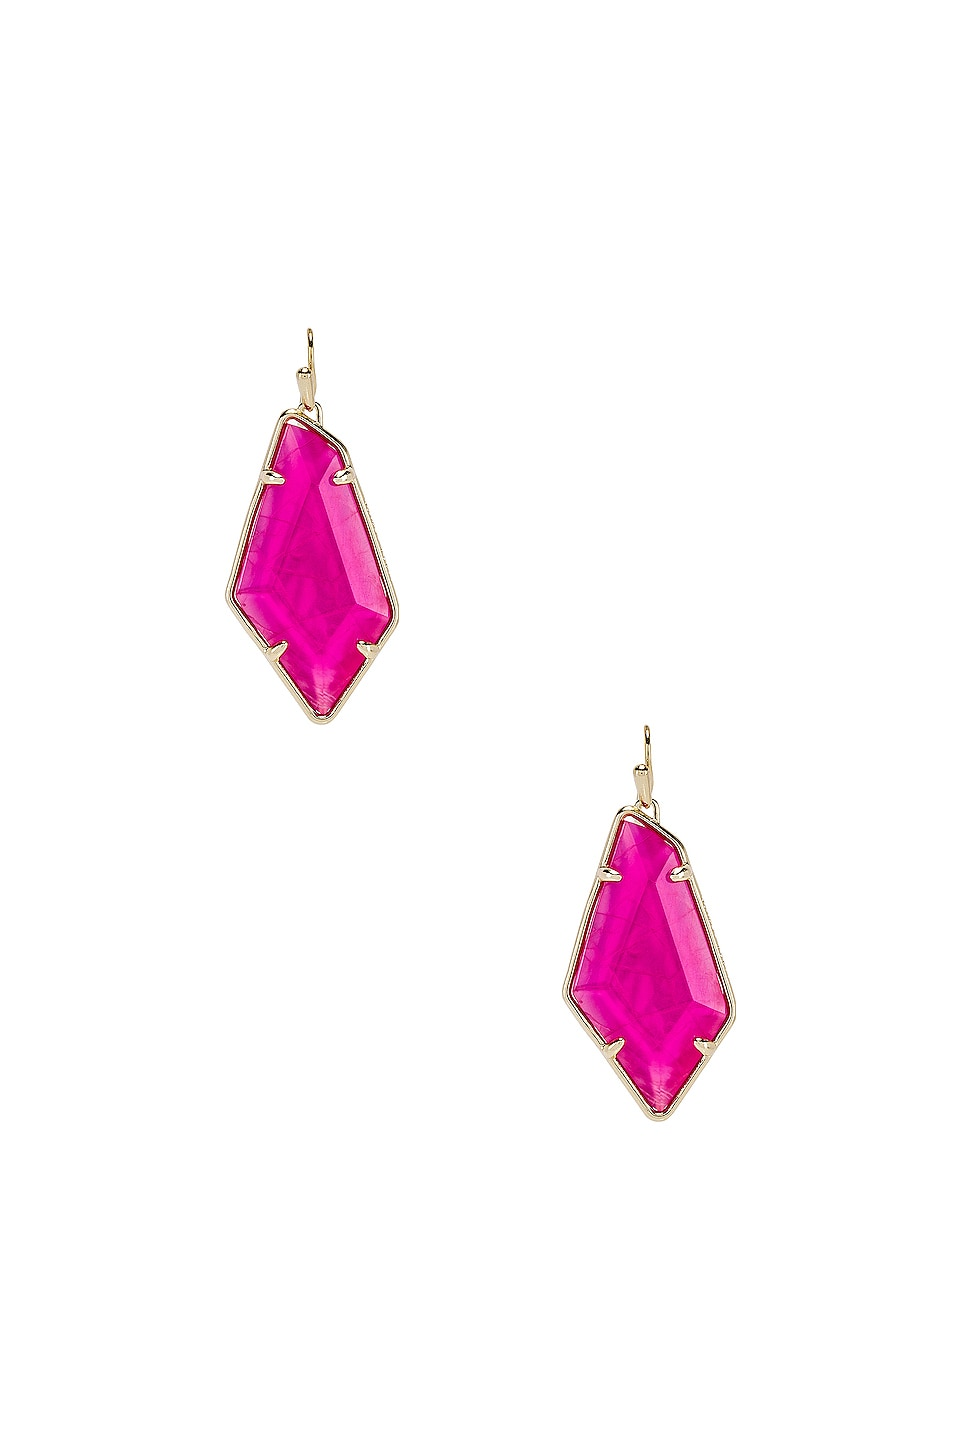 Kendra Scott Emmie Earrings in Gold Azalea Illusion